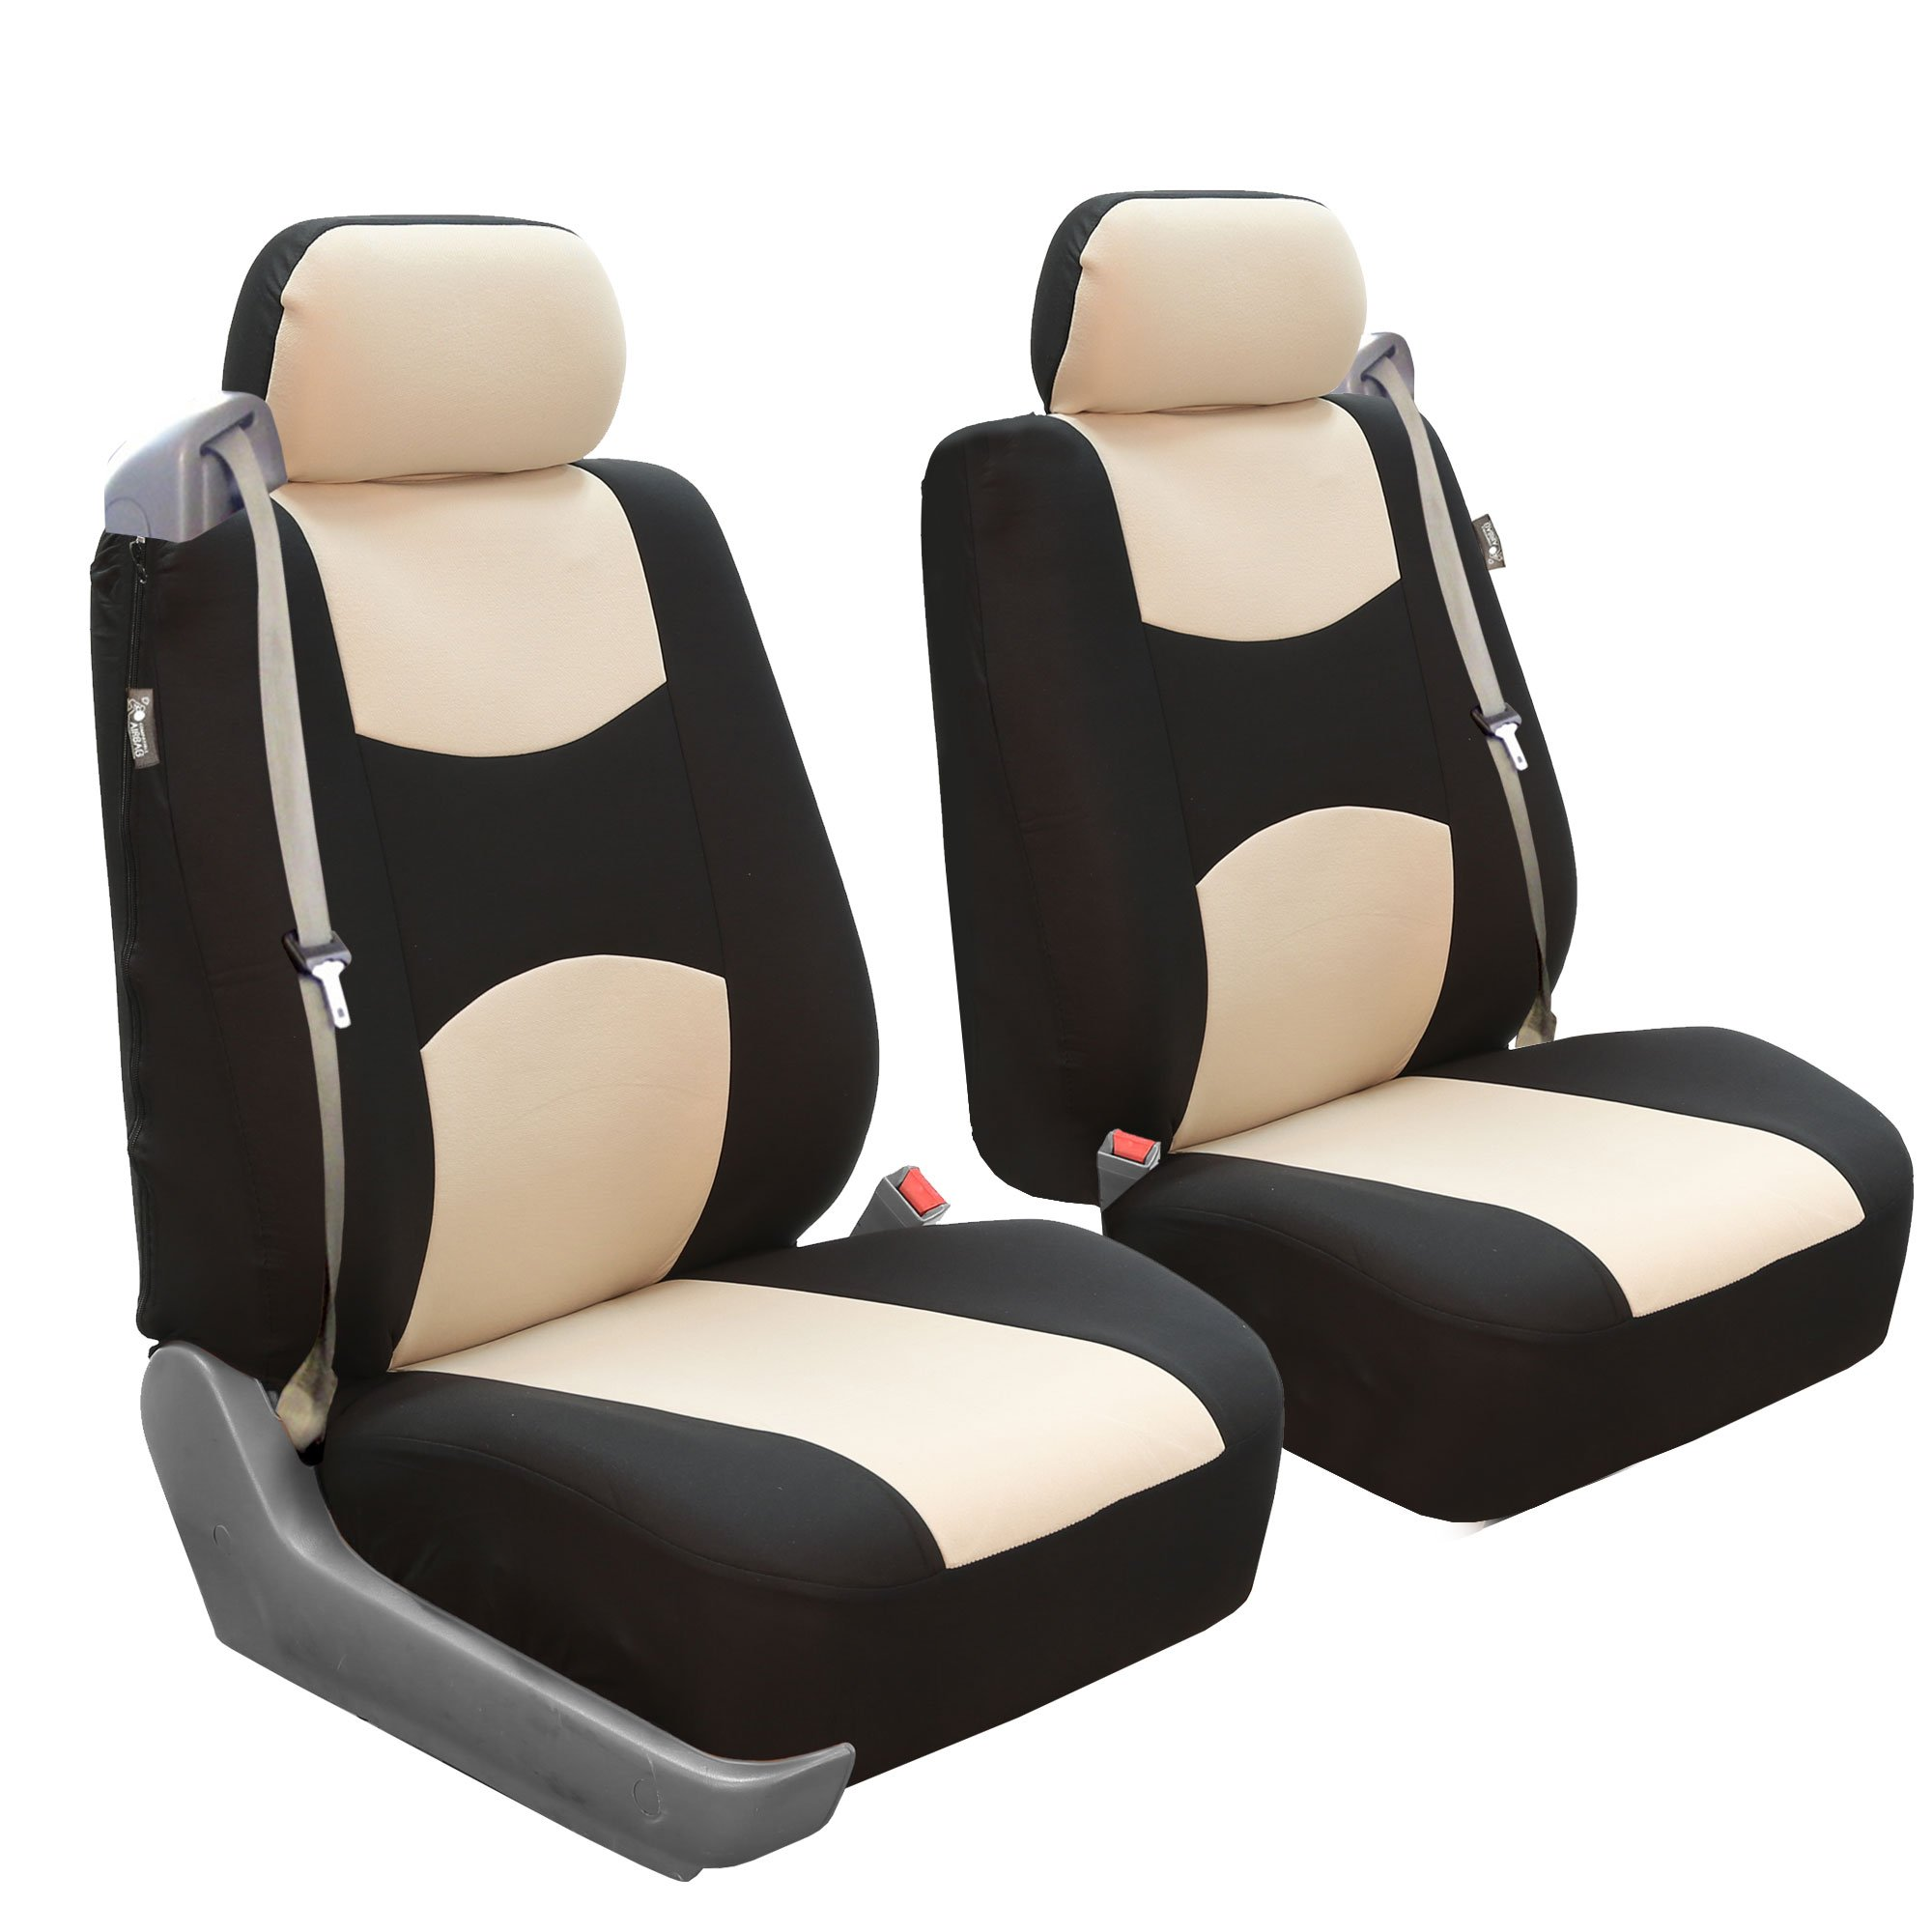 FH GROUP FH-FB351102 Pair Set All Purpose Flat Cloth Built-In Seat Belt Bucket Seat Covers Beige/Black- Fit Most Car, Truck, Suv, or Van